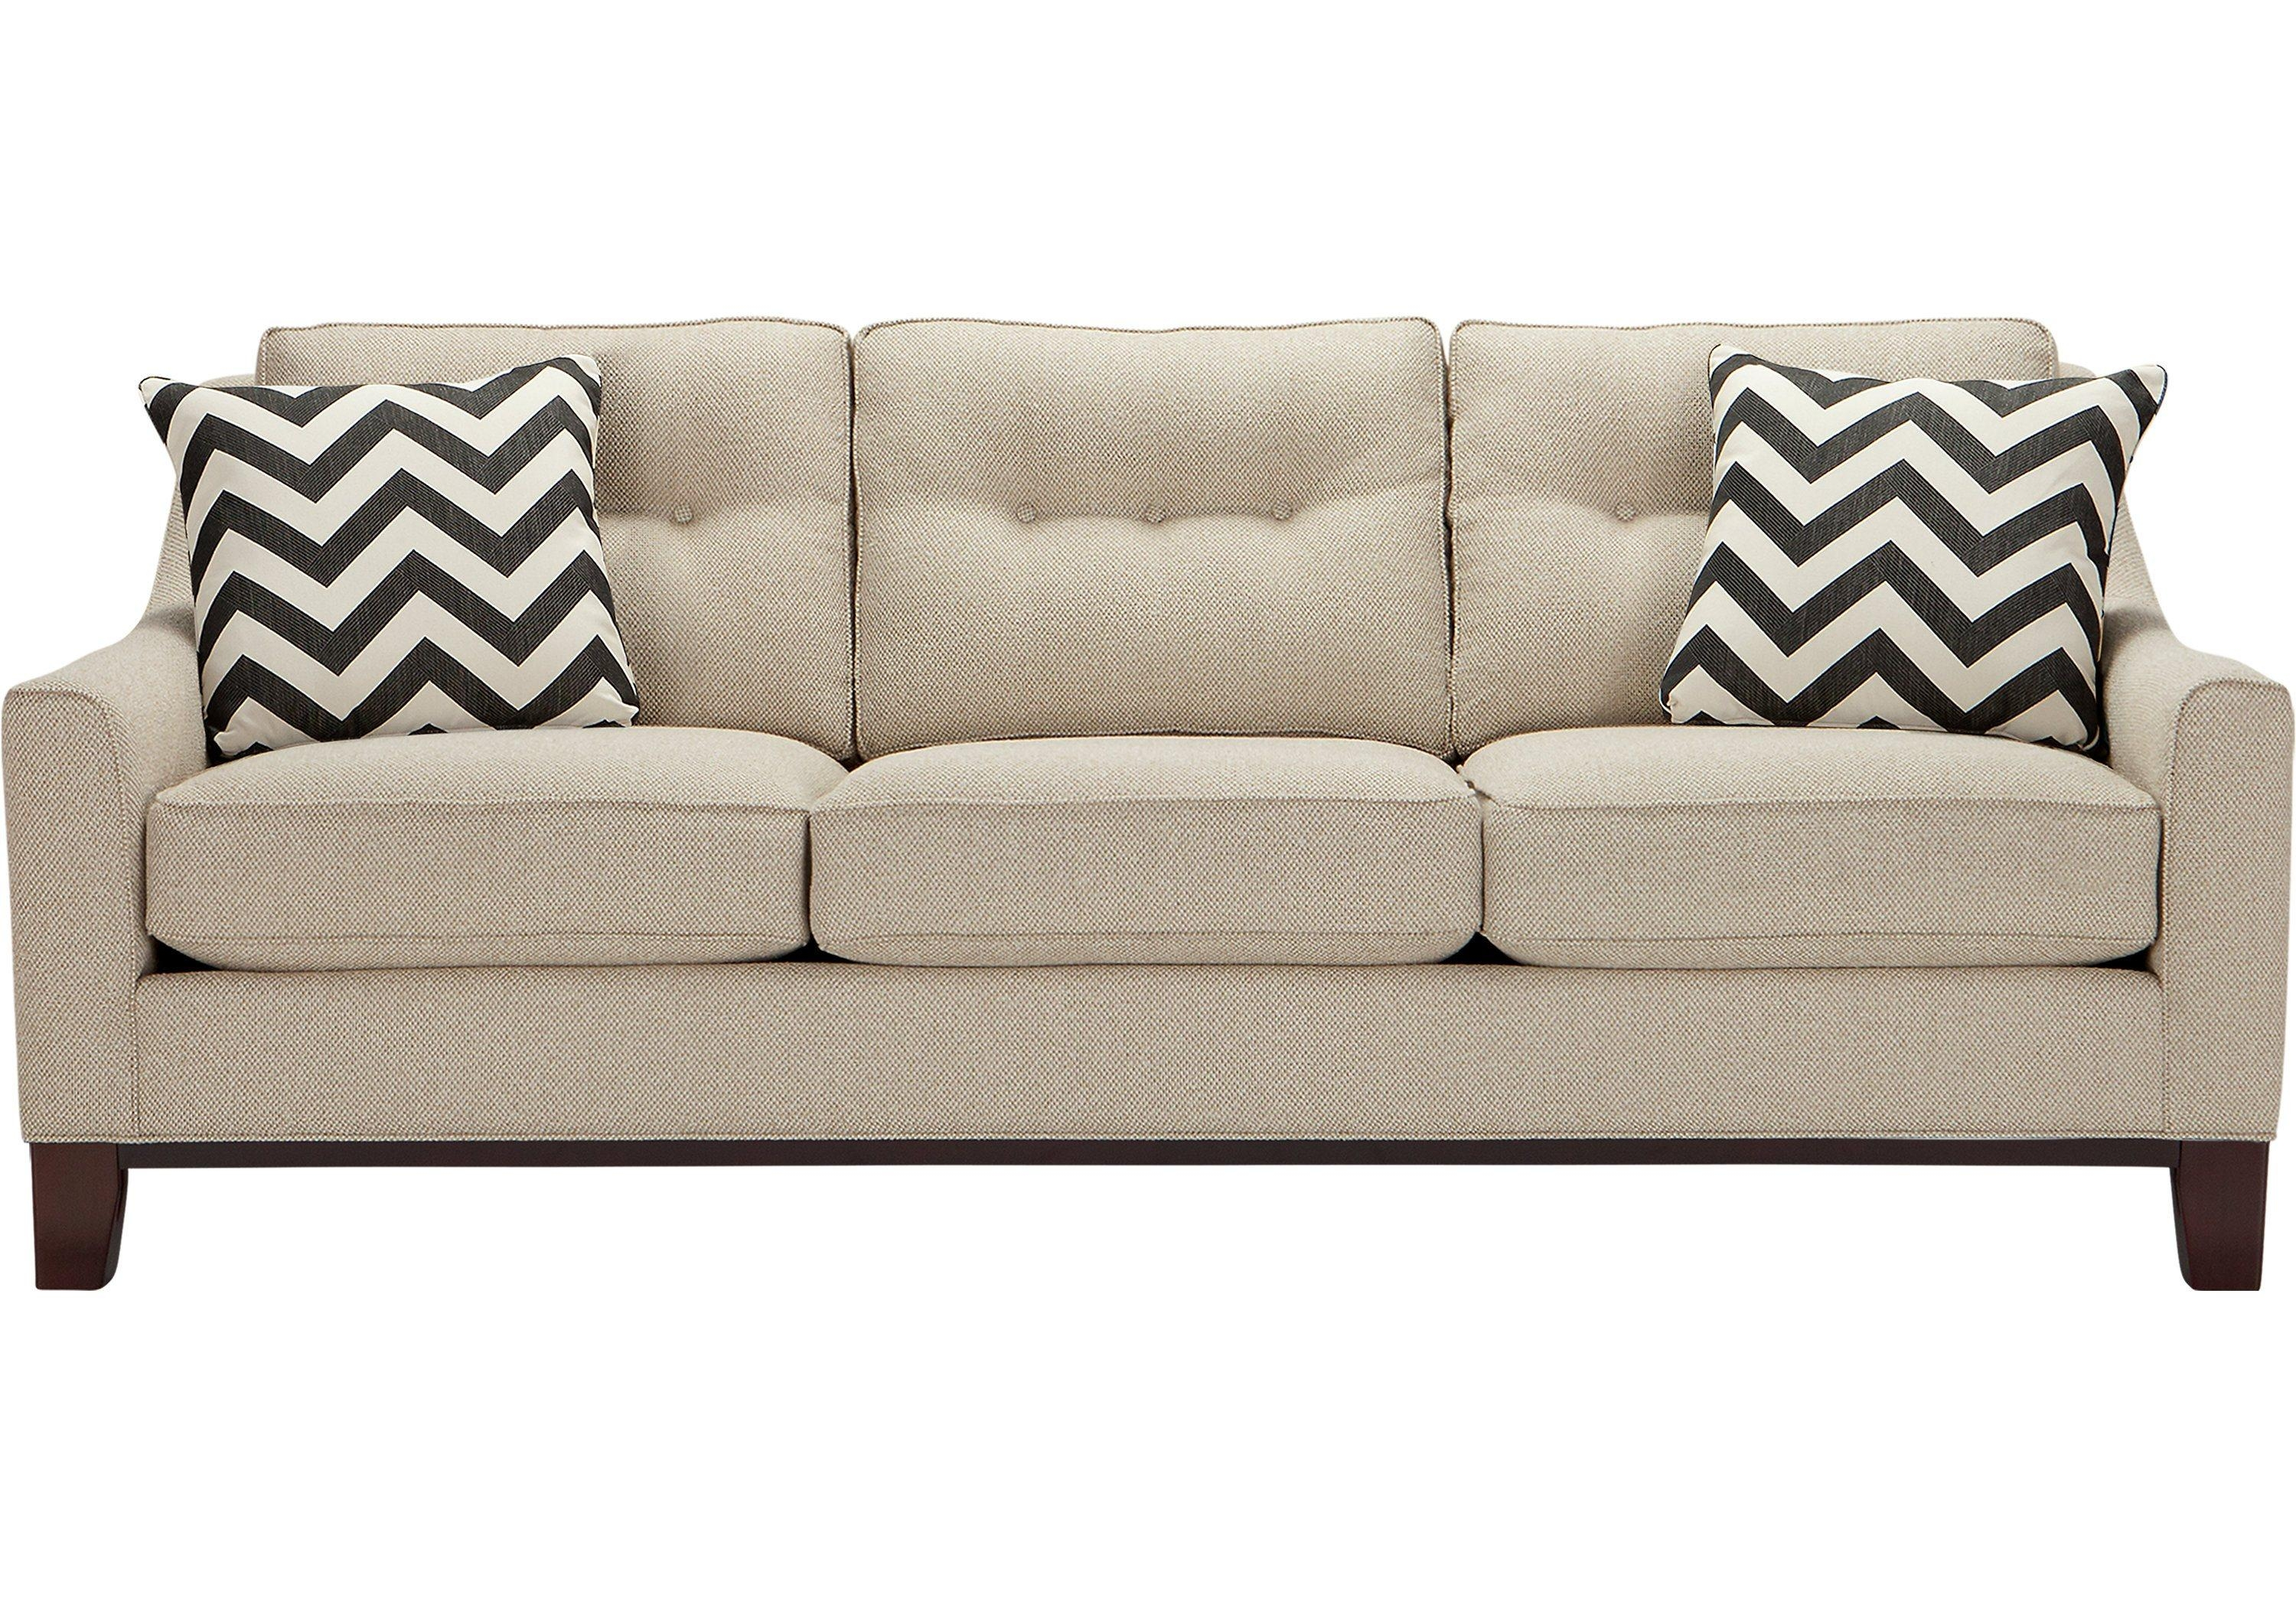 Rooms To Go Hadly Sofa 20 Collection Of Cindy Crawford Sleeper Sofas | Sofa Ideas